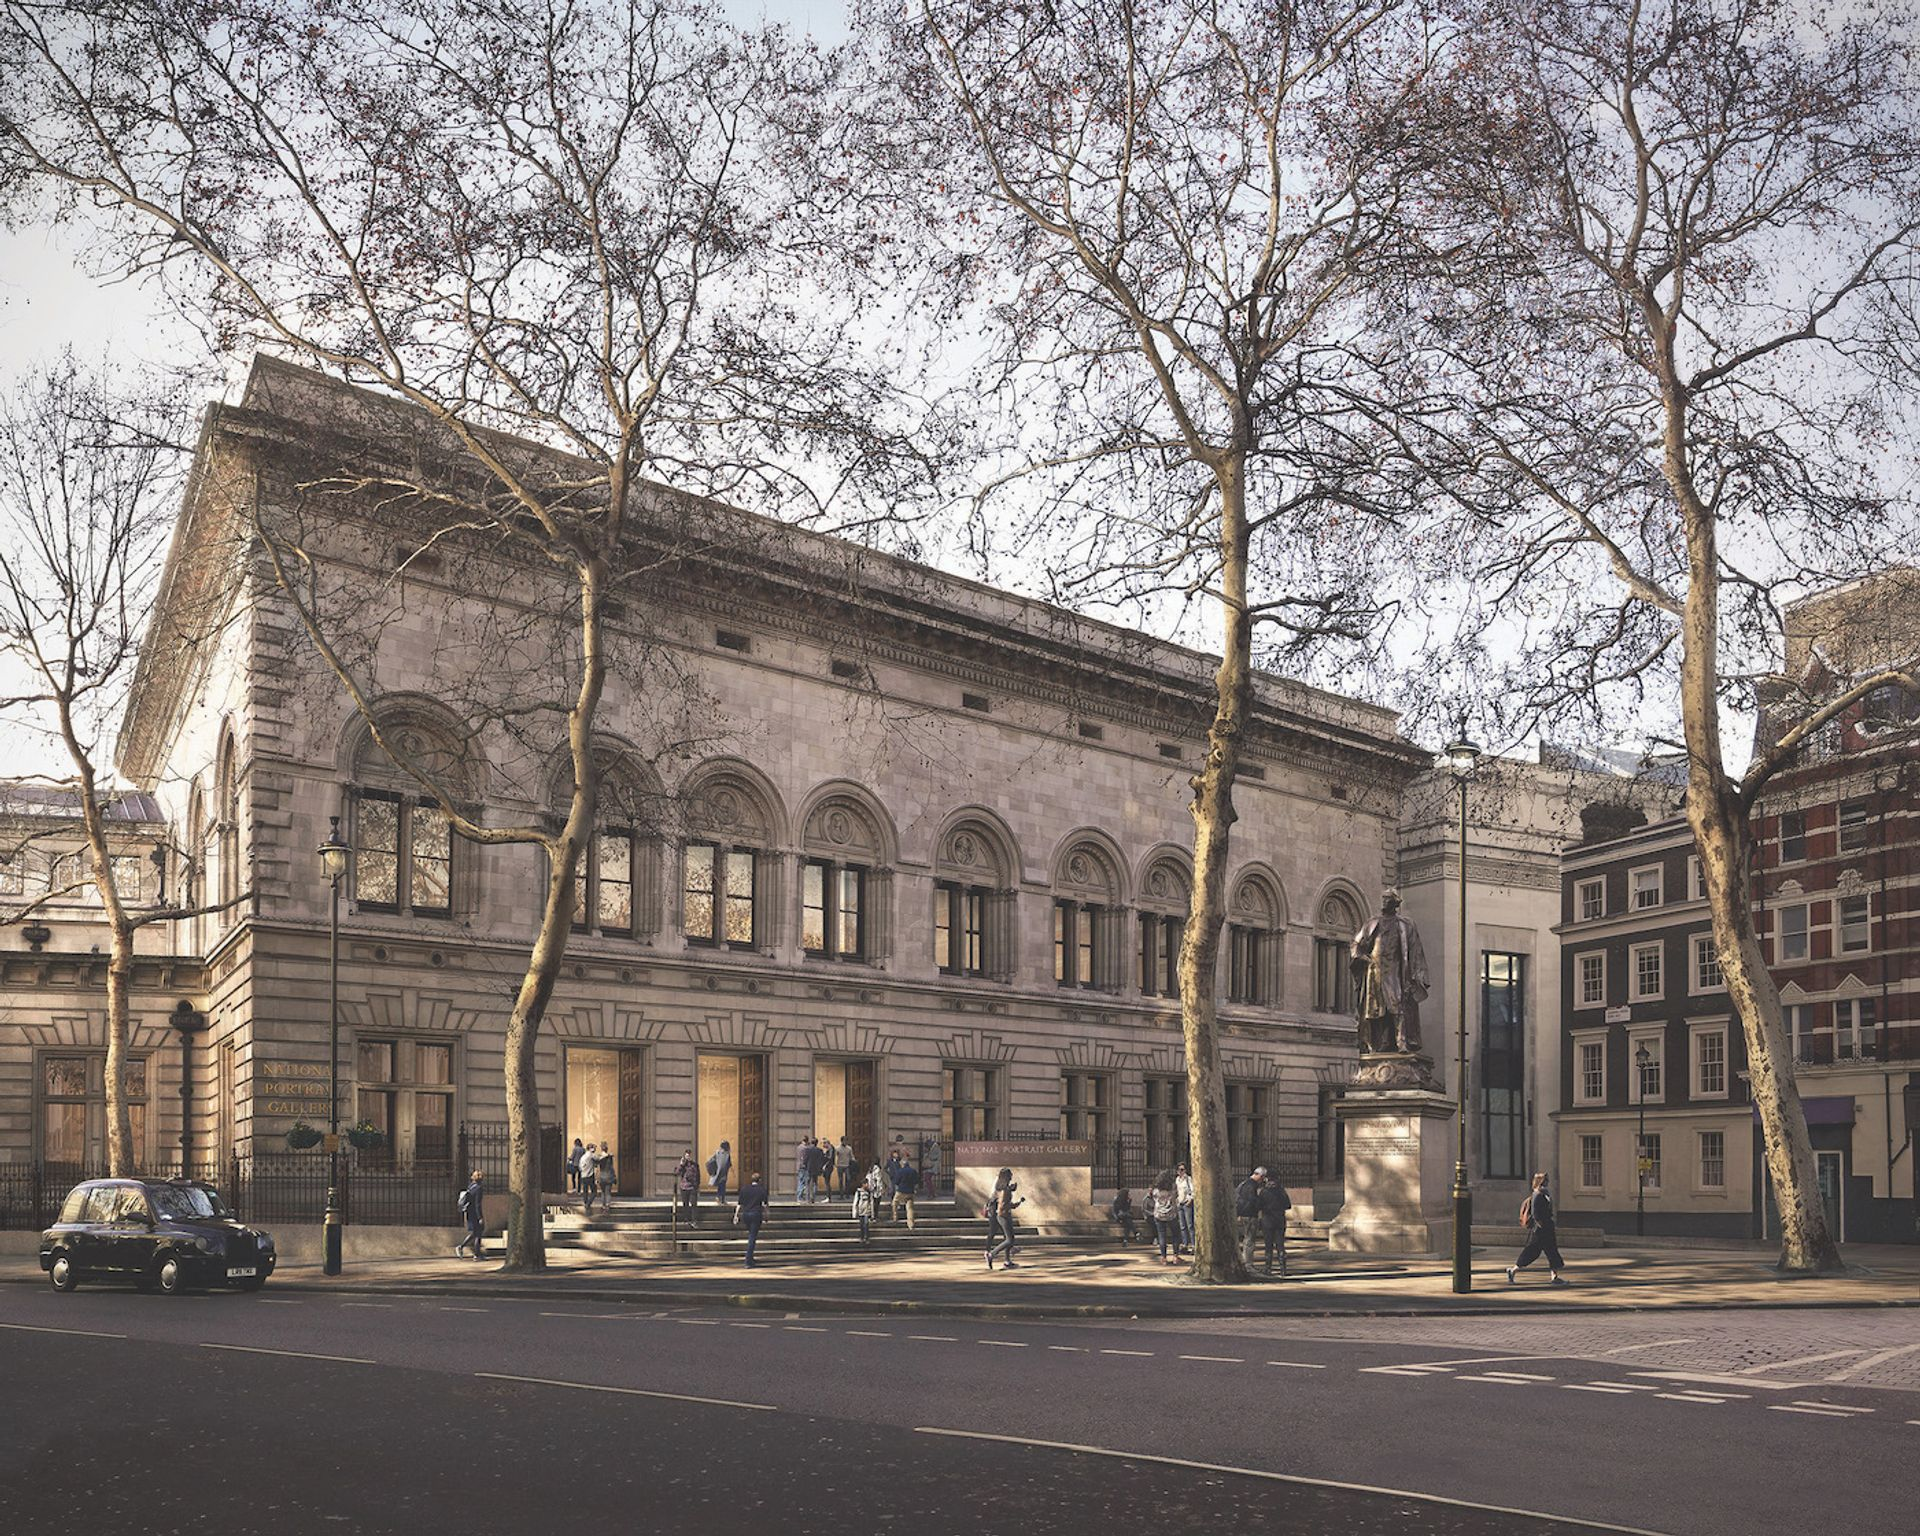 A rendering of the new north-facing entrance of the National Portrait Gallery, designed by Jamie Fobert Architects Jamie Fobert Architects/Forbes Massie